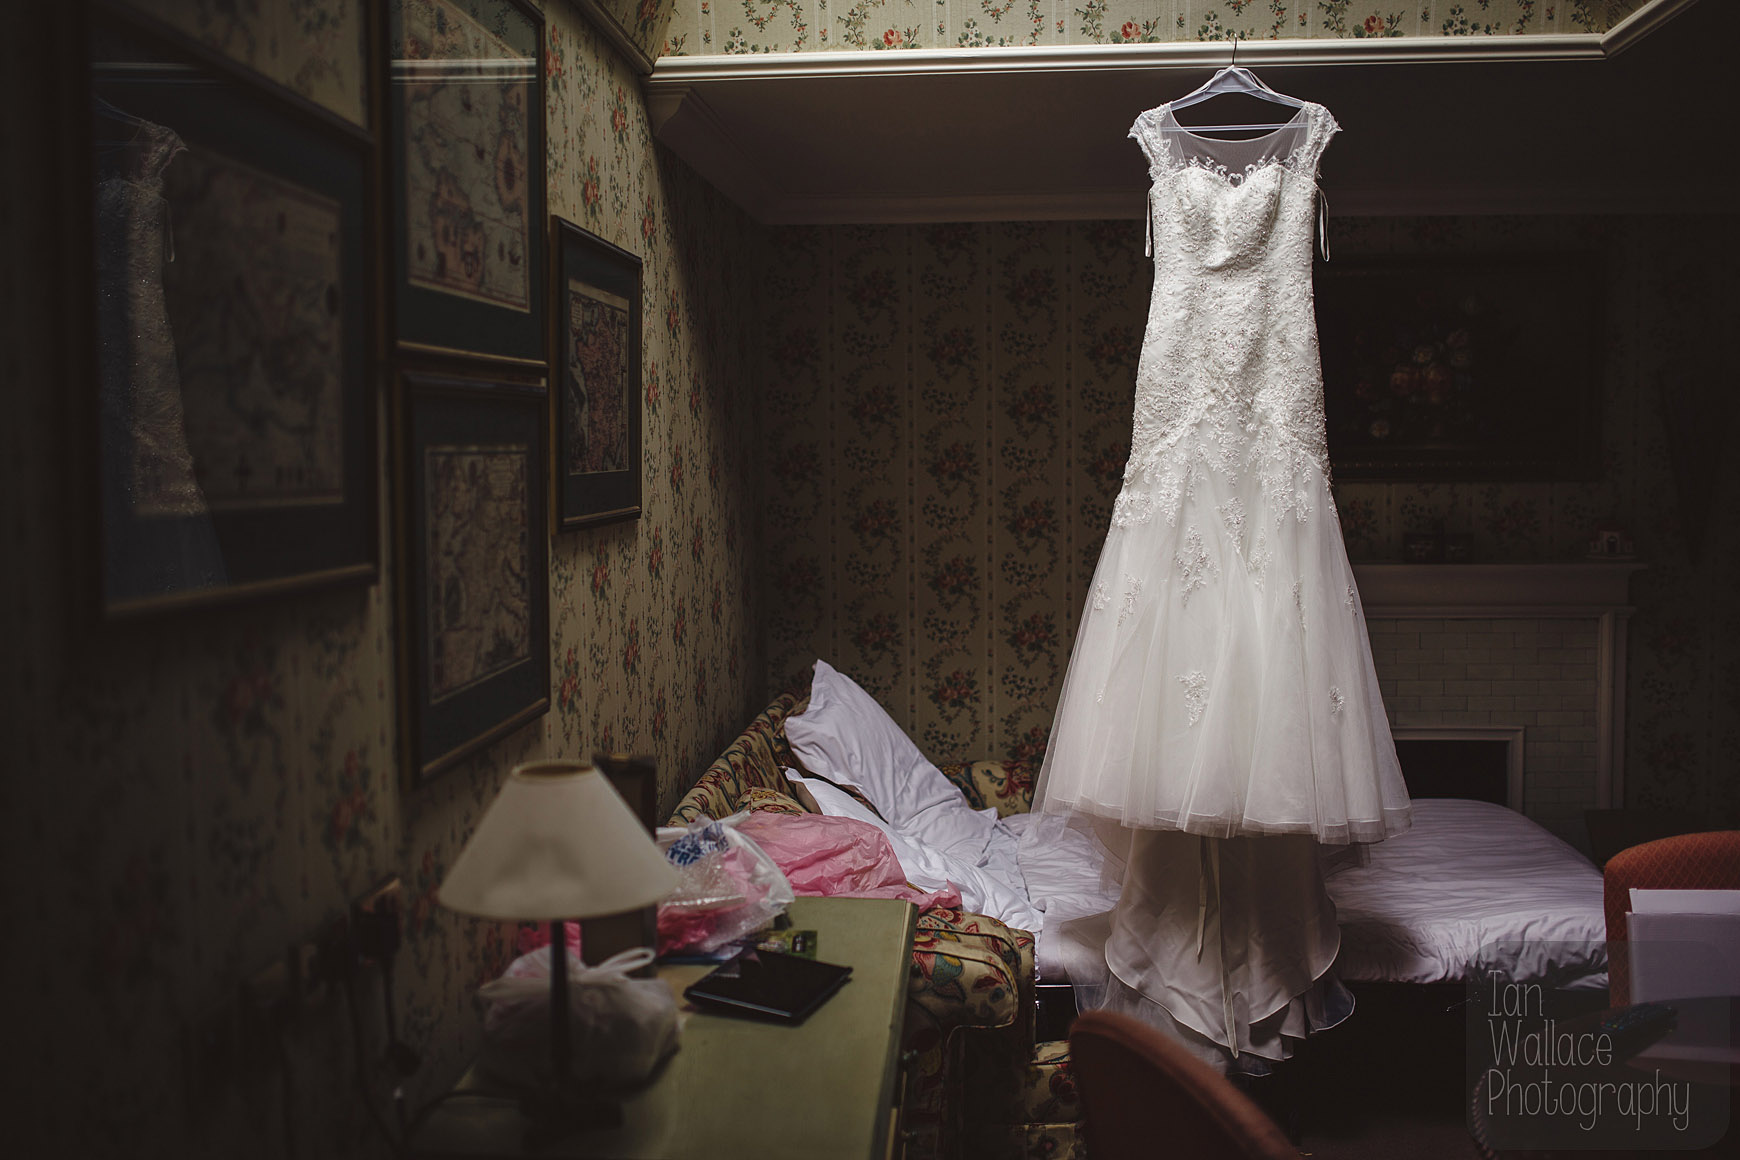 Beautifully lit wedding dress hanging in a messy room